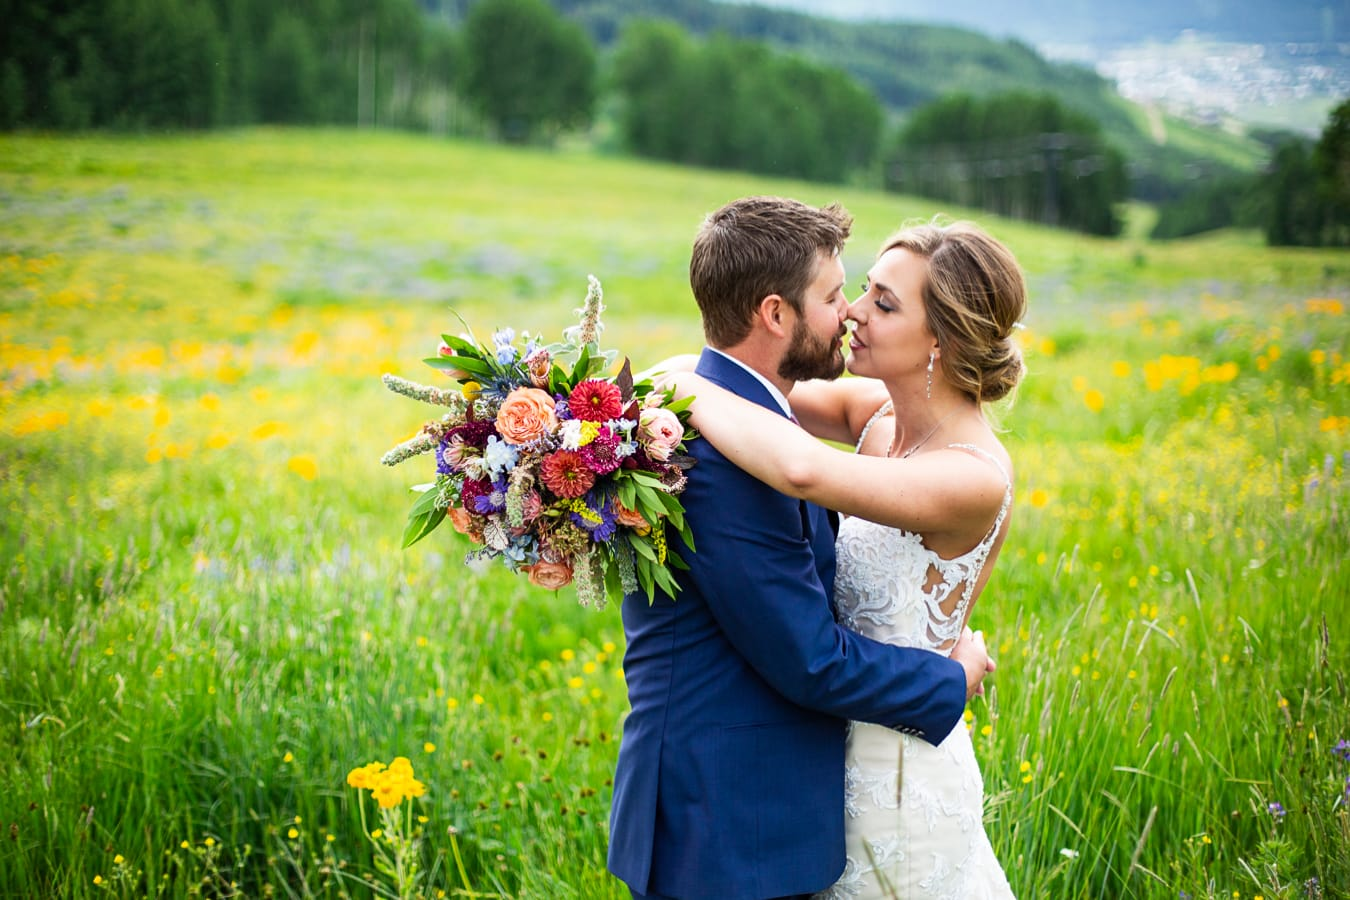 Ten Peaks Wedding Photographer – Crested Butte, Colorado